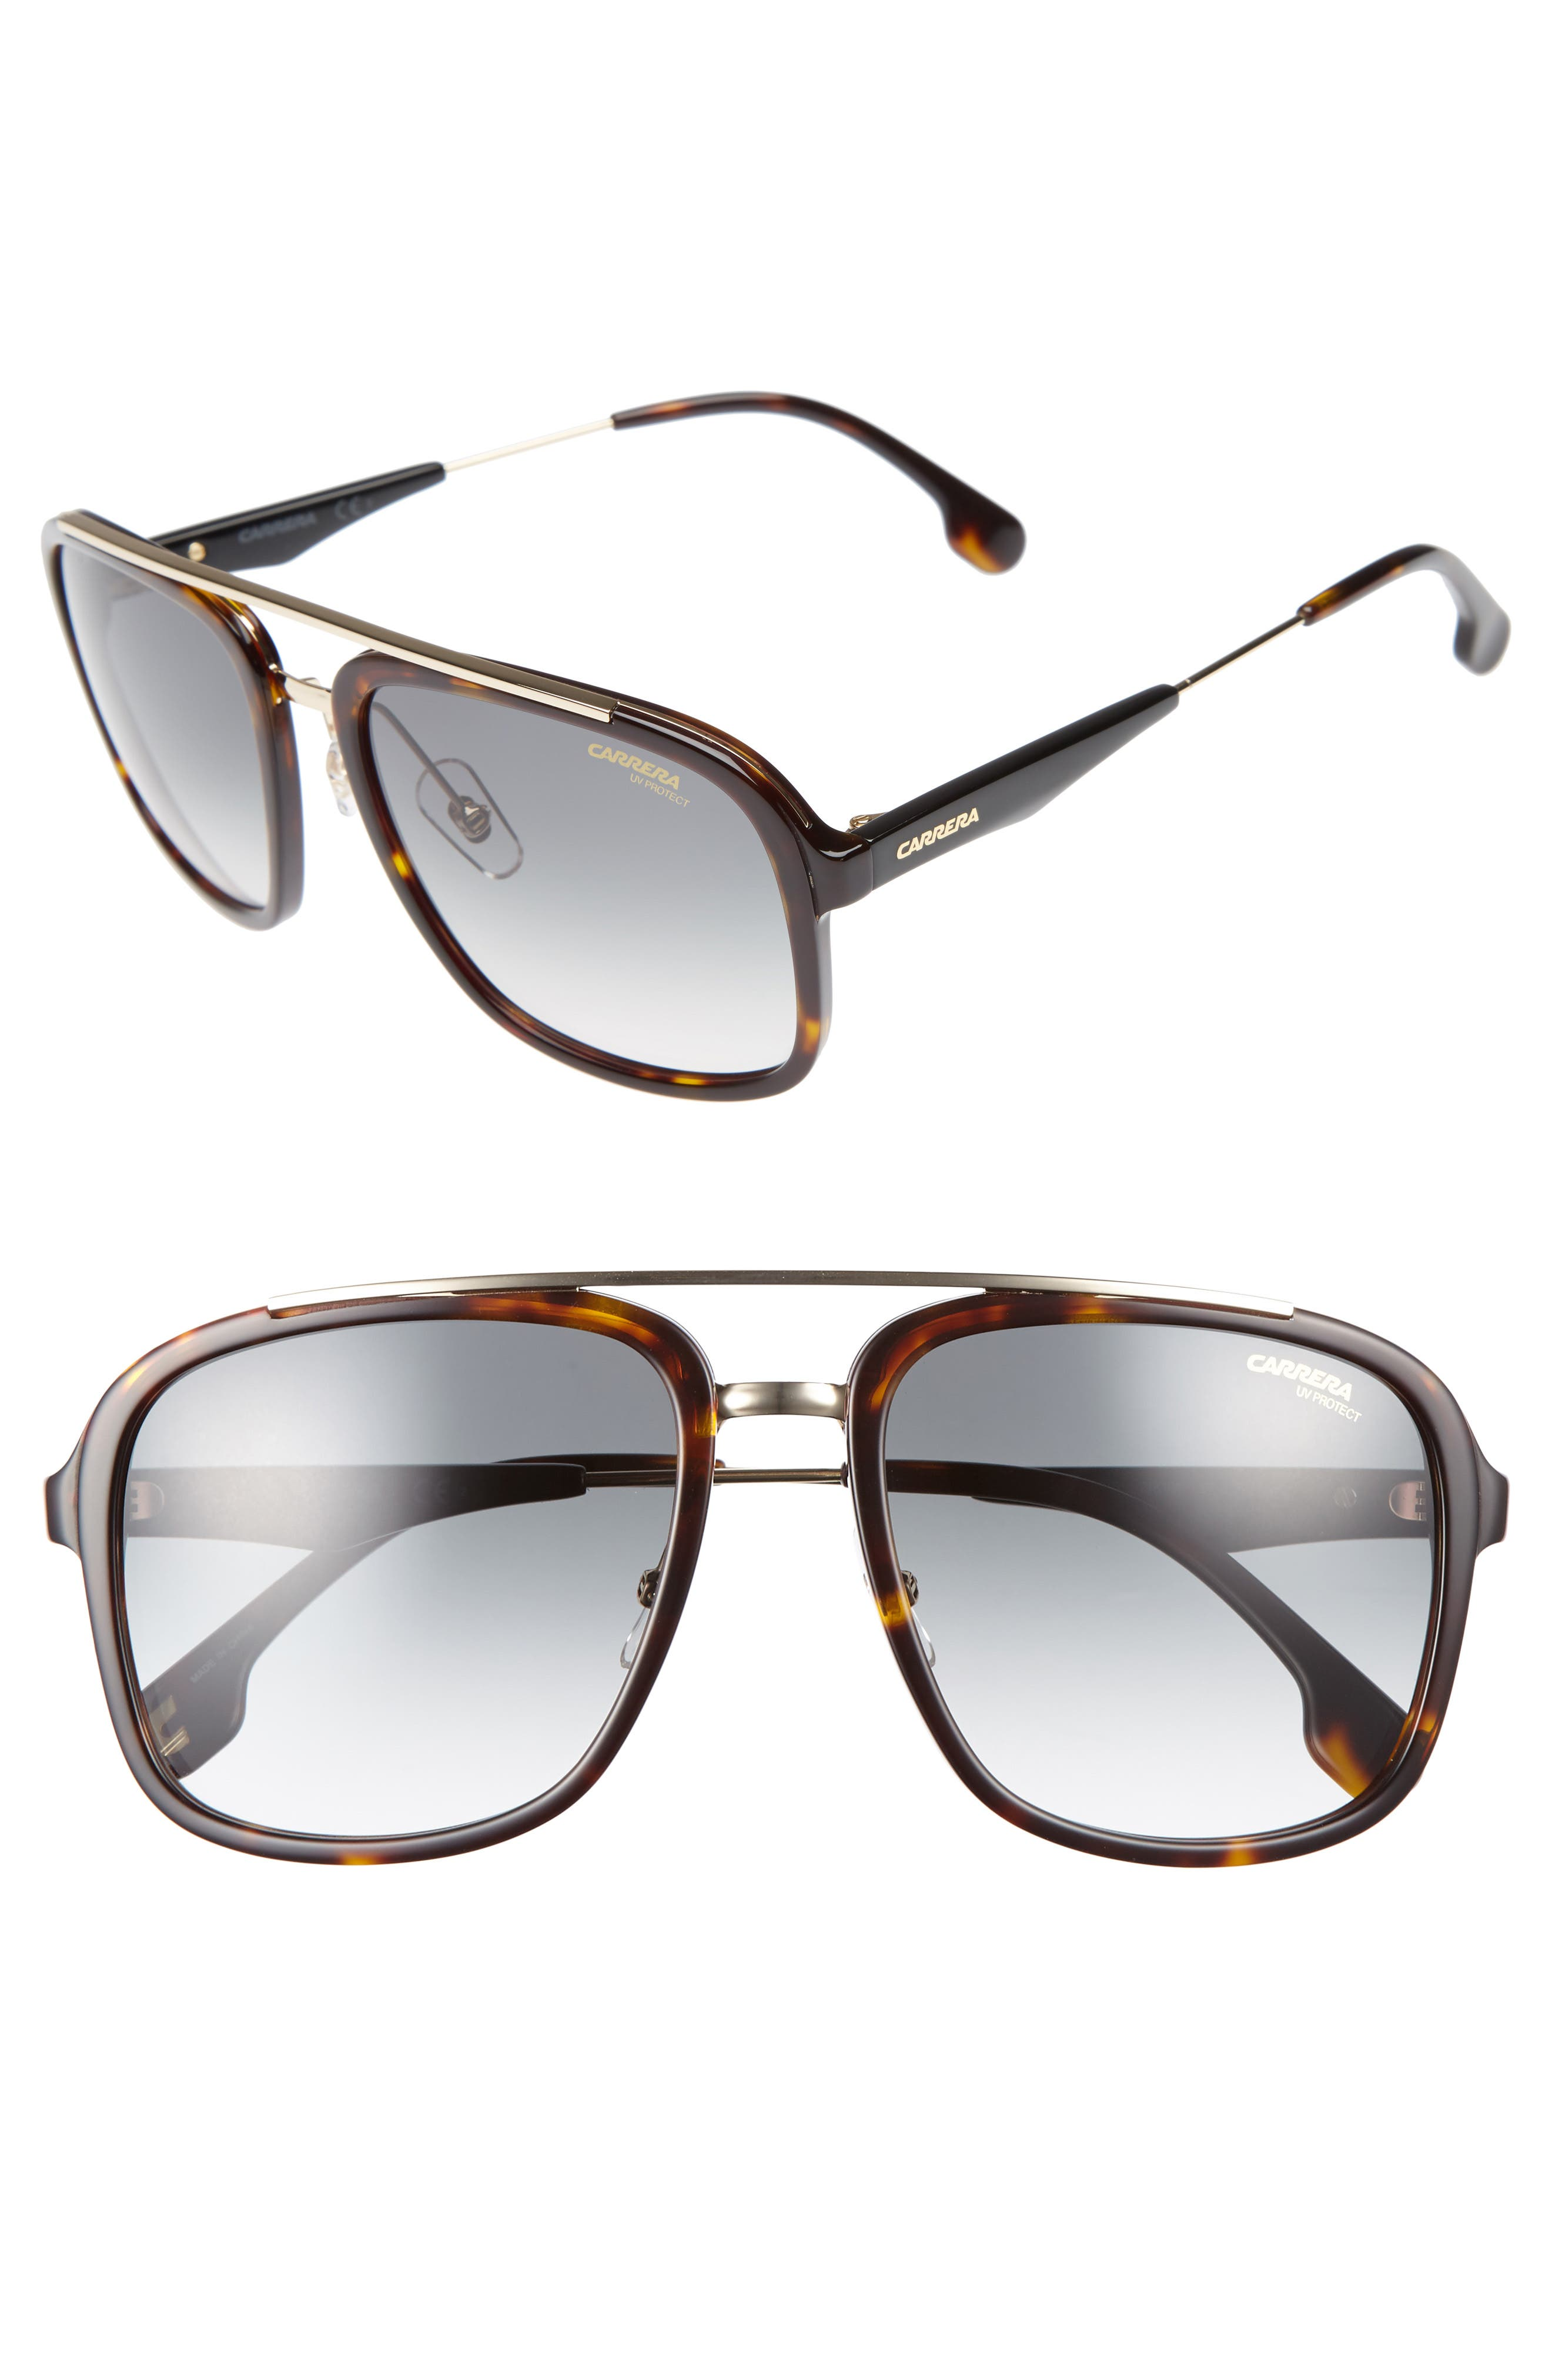 57mm Sunglasses,                             Main thumbnail 1, color,                             Havana Gold